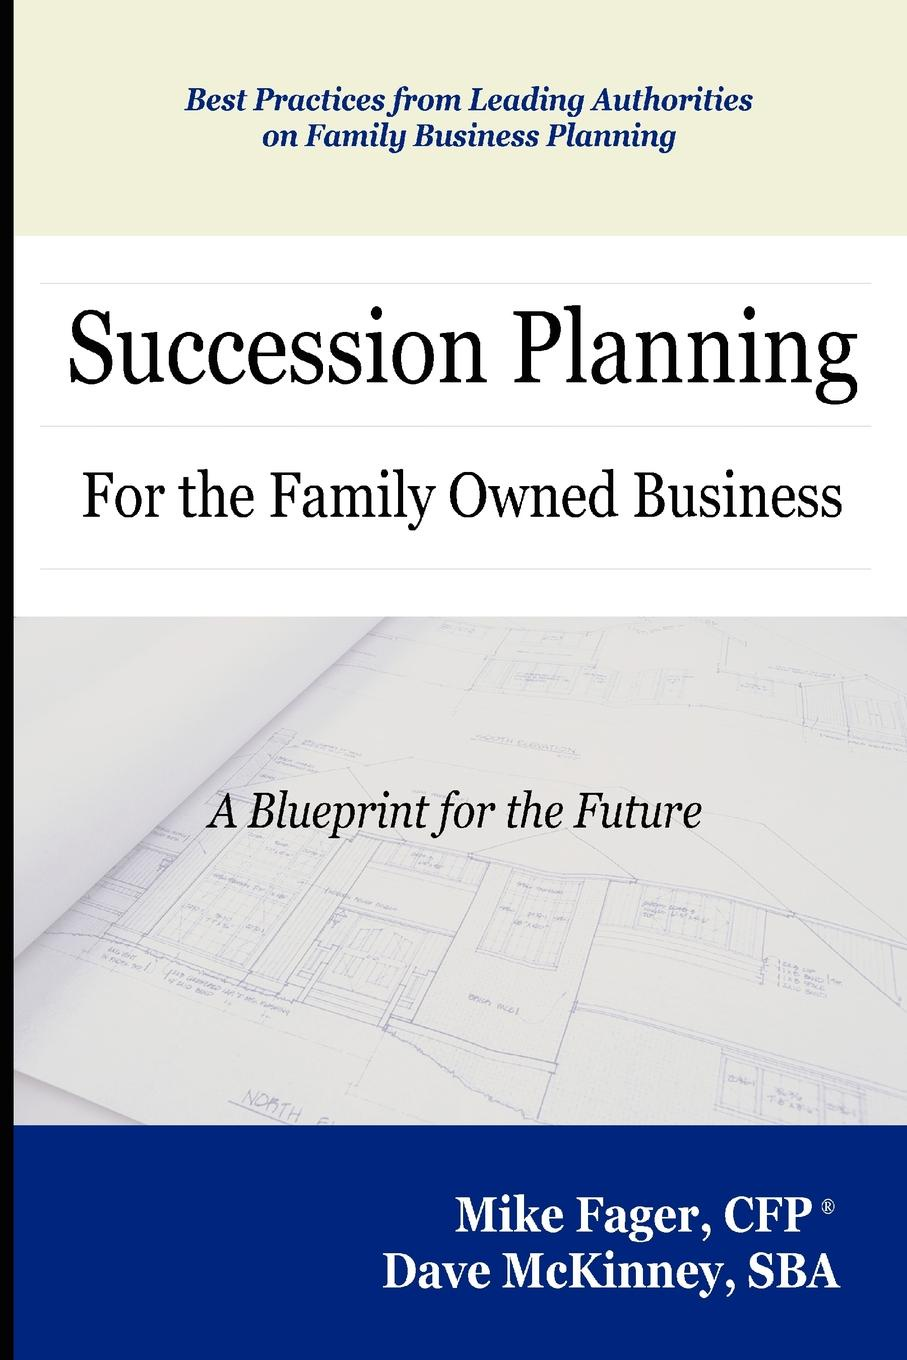 Mike Fager, Dave McKinney Succession Planning for the Family Owned Business business planning to ease repaying loans